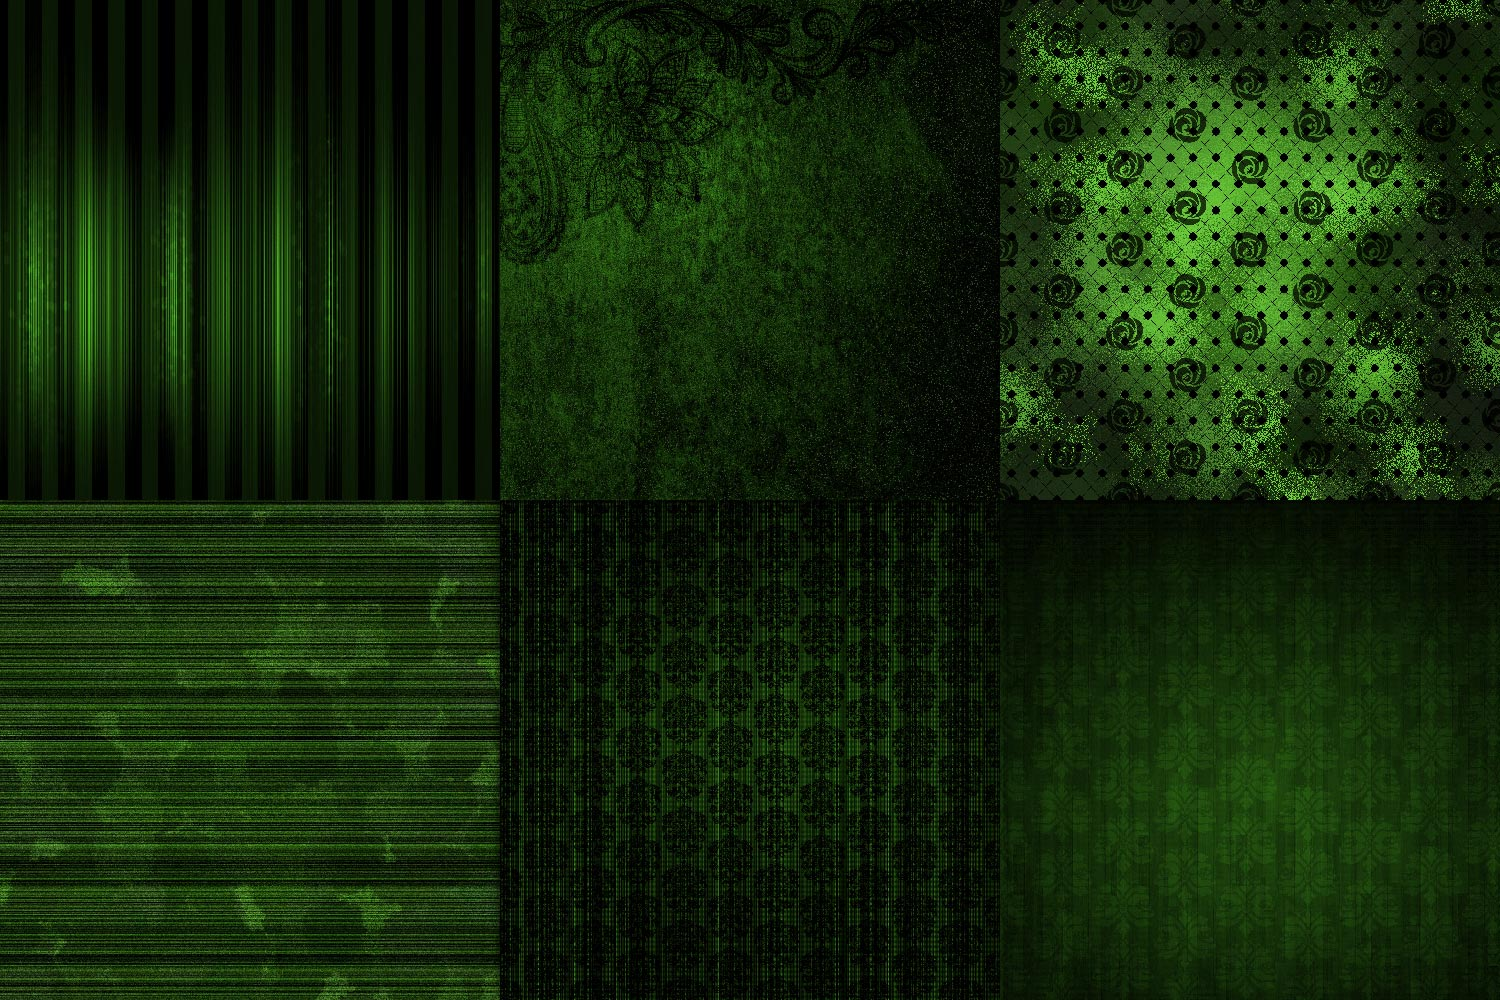 Emerald Grunge Digital Paper example image 2